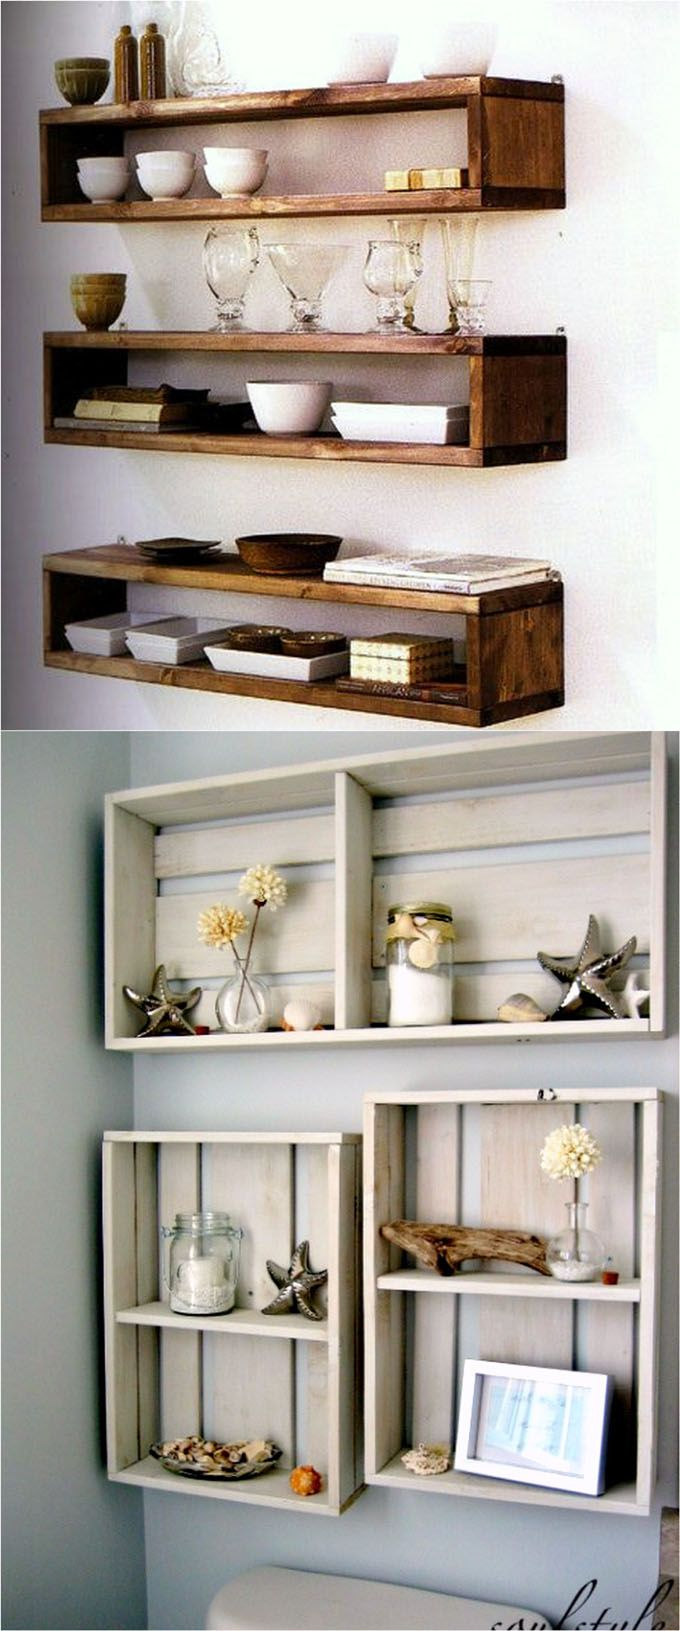 best 25 wall shelves ideas on pinterest shelves wall With ideas to build interesting wood shelving units